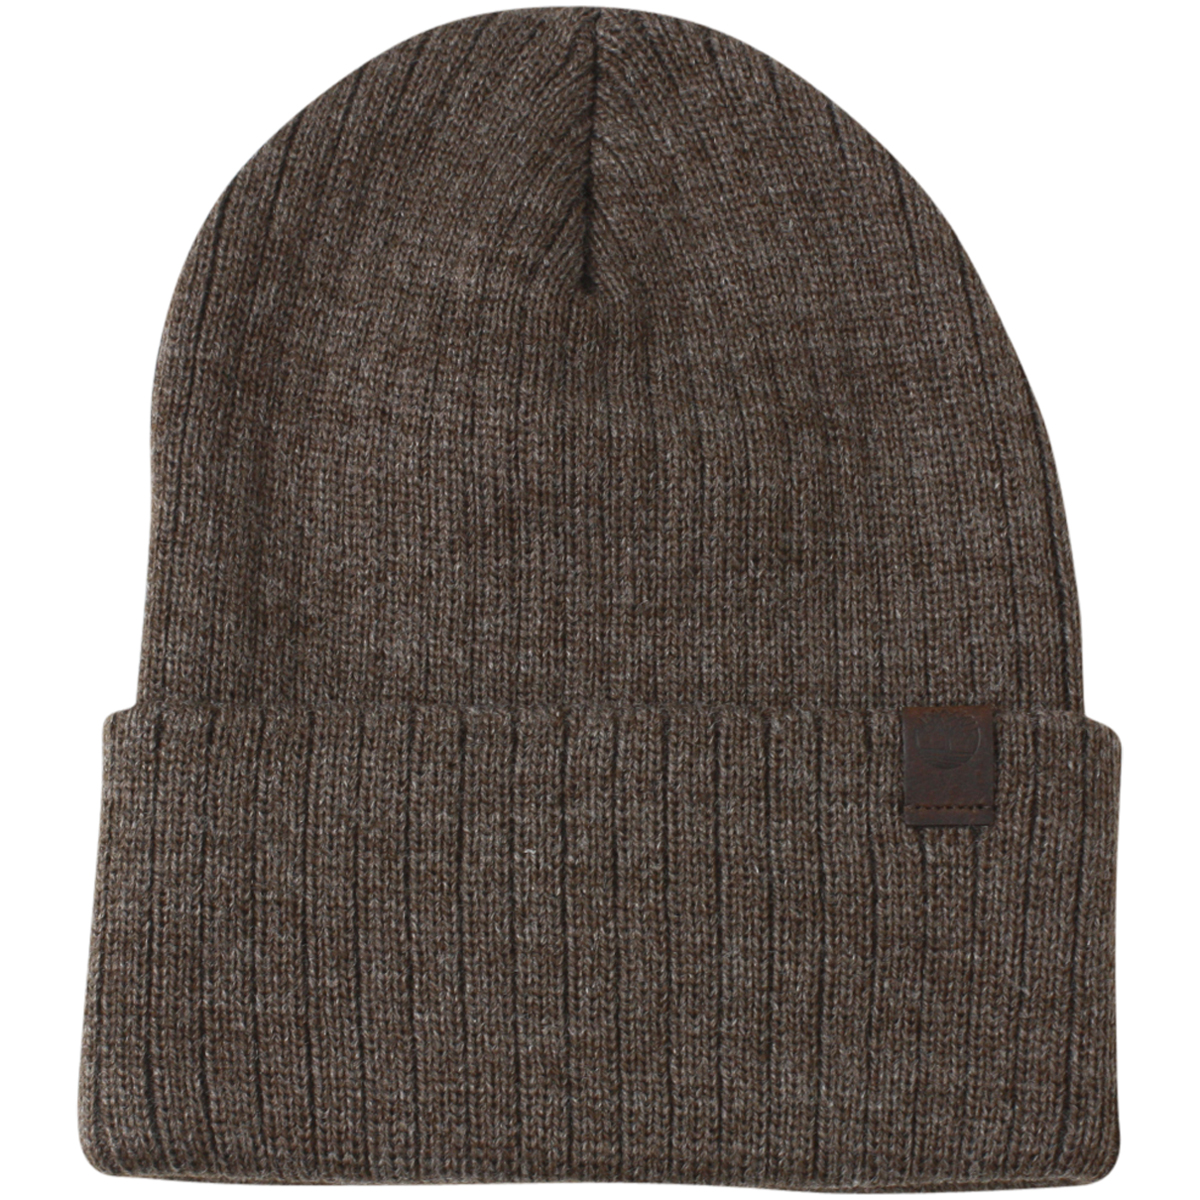 2a00c107 Timberland Kids Boy's Brown Ribbed Watch Cap Beanie Hat (One Size ...